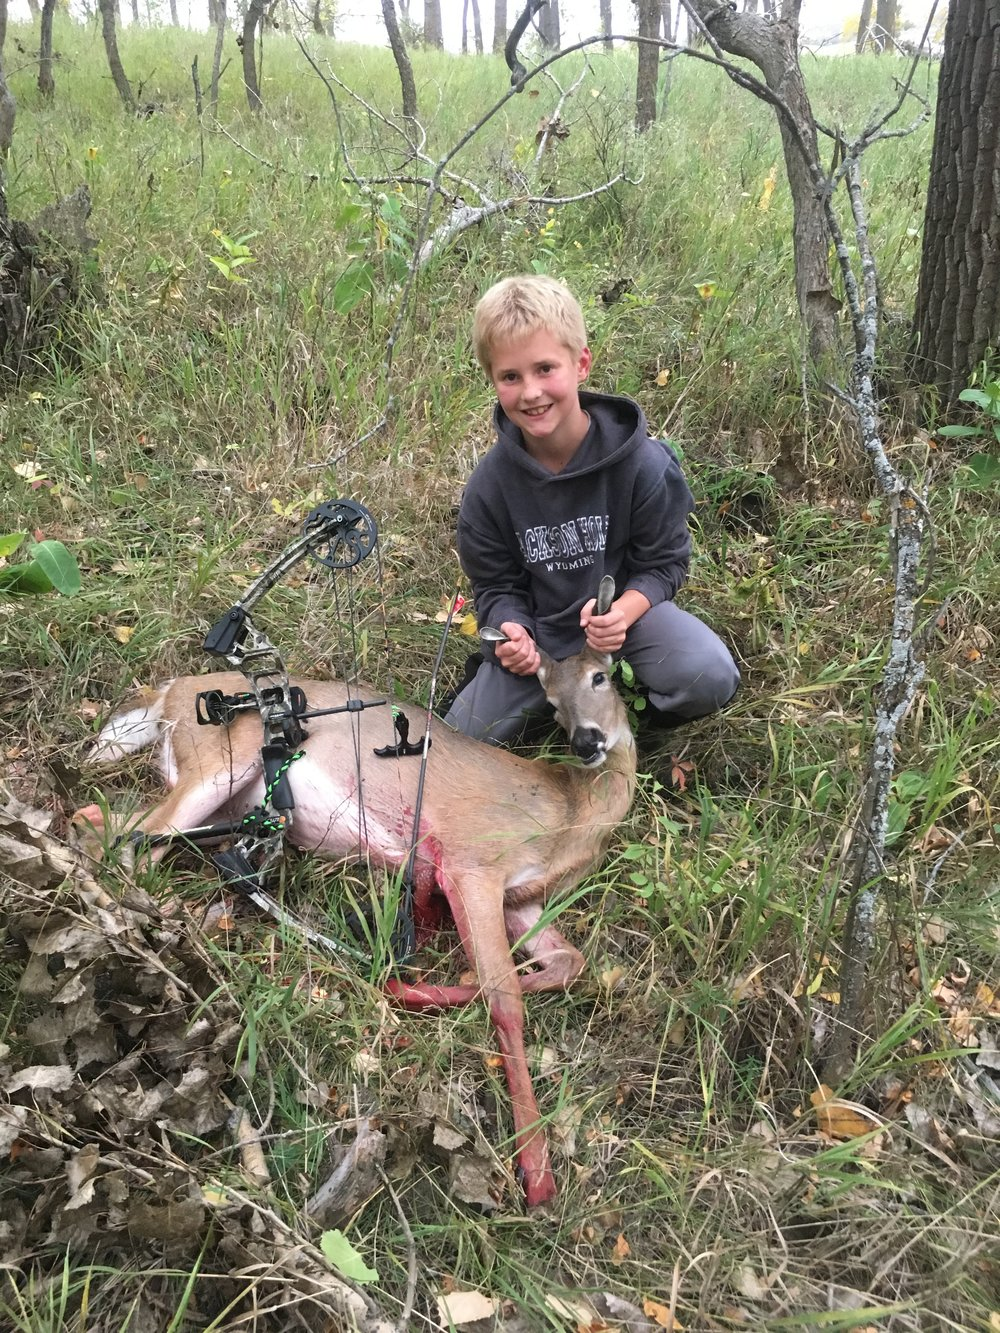 Burleigh County, ND (Private Land) - Name: Finn DockterHometown: Valley City, NDDate of Harvest: September 15, 2018Weapon: BowStory: This was the first deer that my 9 year old has harvested. After he shot we waited for 30 minutes before we started tracking. I let my son take the lead and in less then 10 minutes and about 50 yards he tracked and found the deer. He made a great shot.